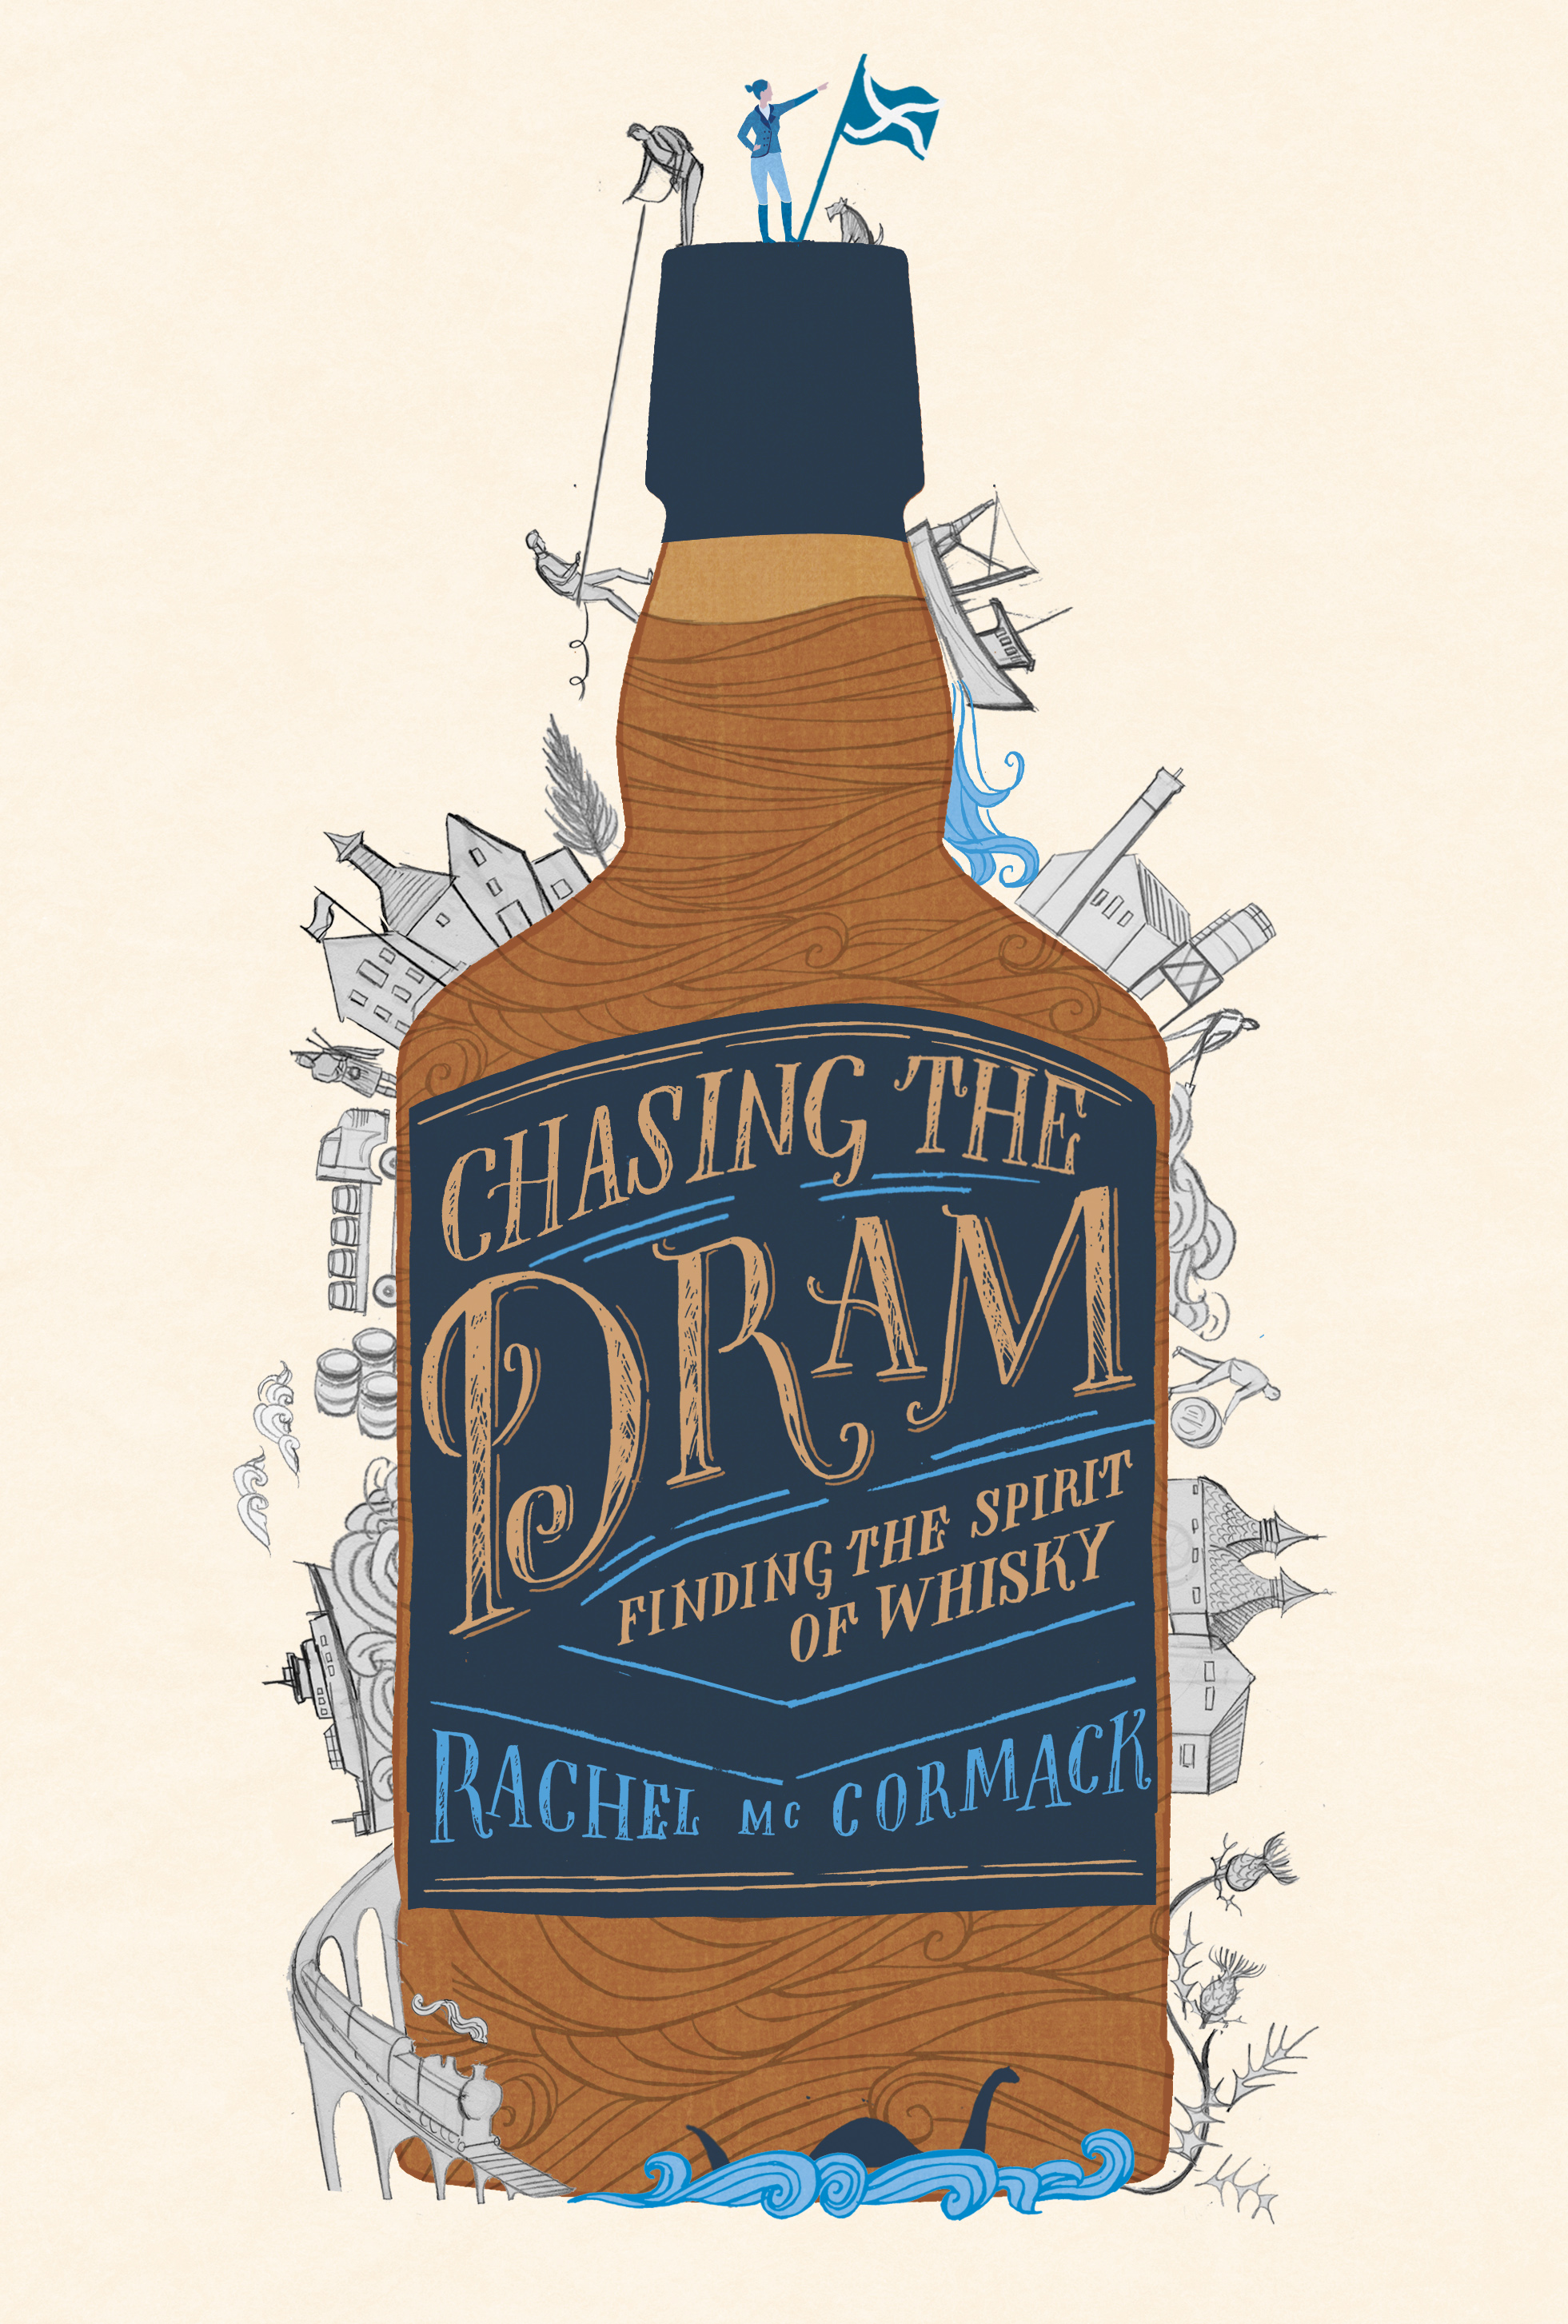 Chasing The Dram Work in Progress.jpg